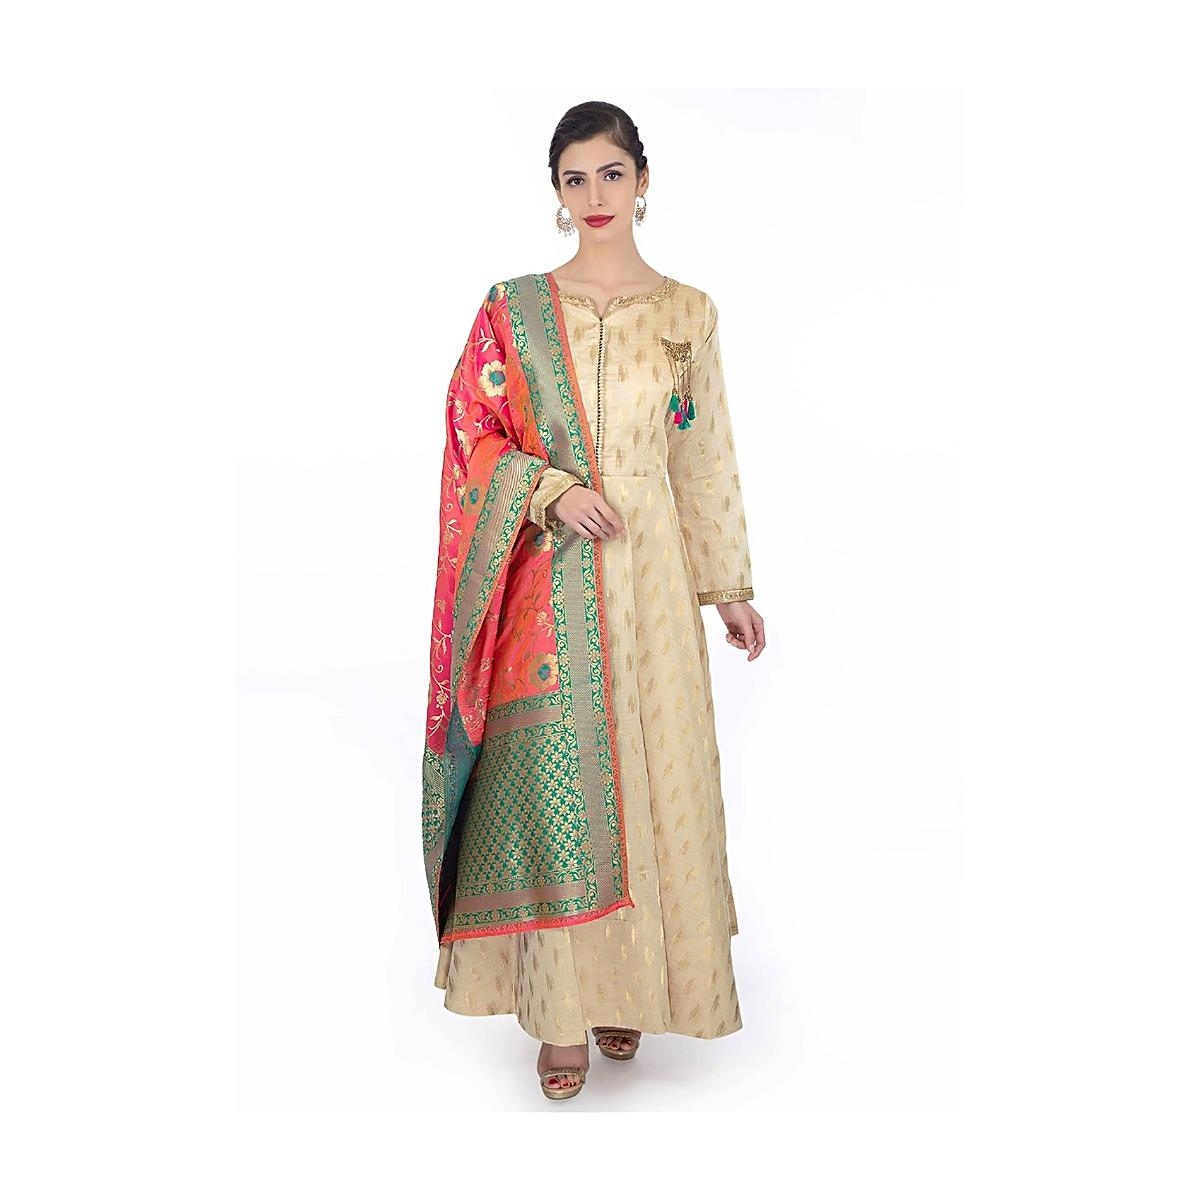 d264ca3104 Source:https://www.kalkifashion.com/chanderi-silk-cream-anarkali-dress  -paired-with-coral-brocade-dupatta-with-teal-border-only-on-kalki.html